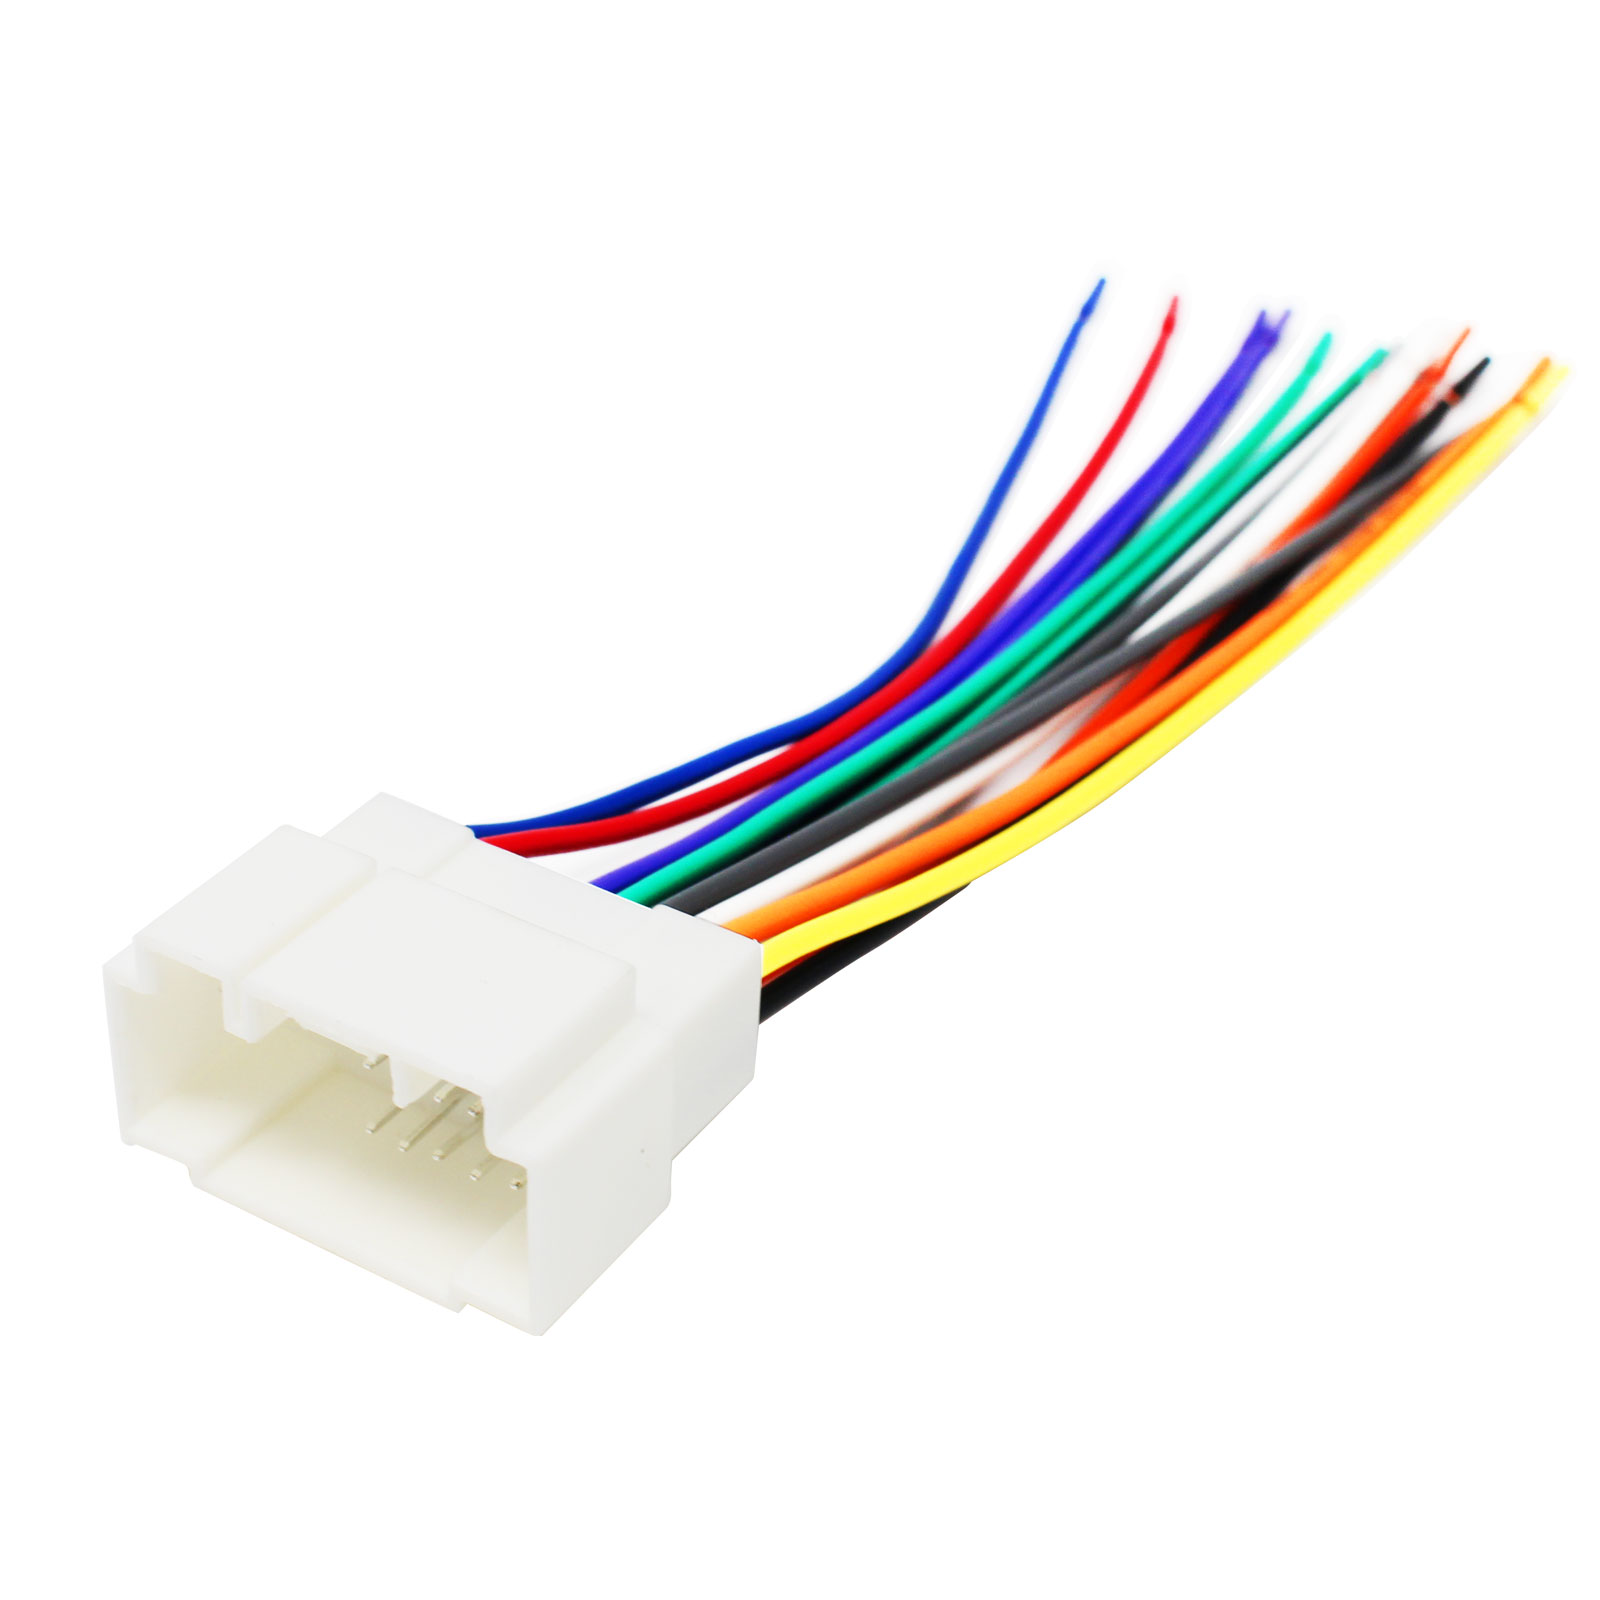 Replacement Radio Wiring Harness For 2002 Honda Civic Ex Coupe 2 Honda  Odyssey Stereo Wiring Diagram 2002 Honda Civic Radio Wiring